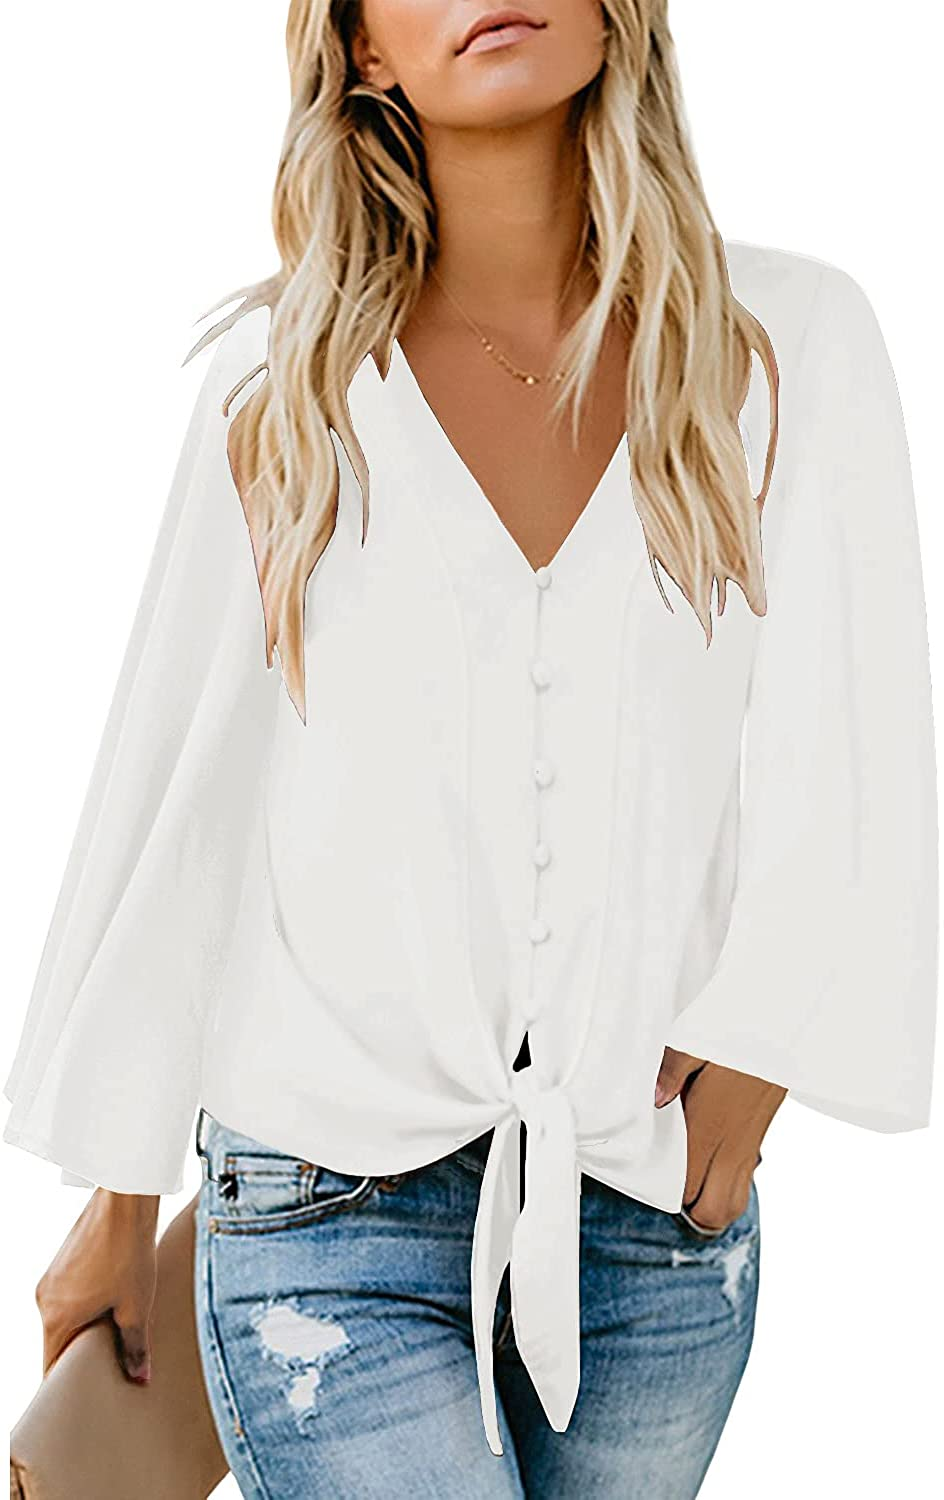 luvamia Women's V Neck Button Limited price Down Long Tie Sleeve Casual Shirts Clearance SALE Limited time